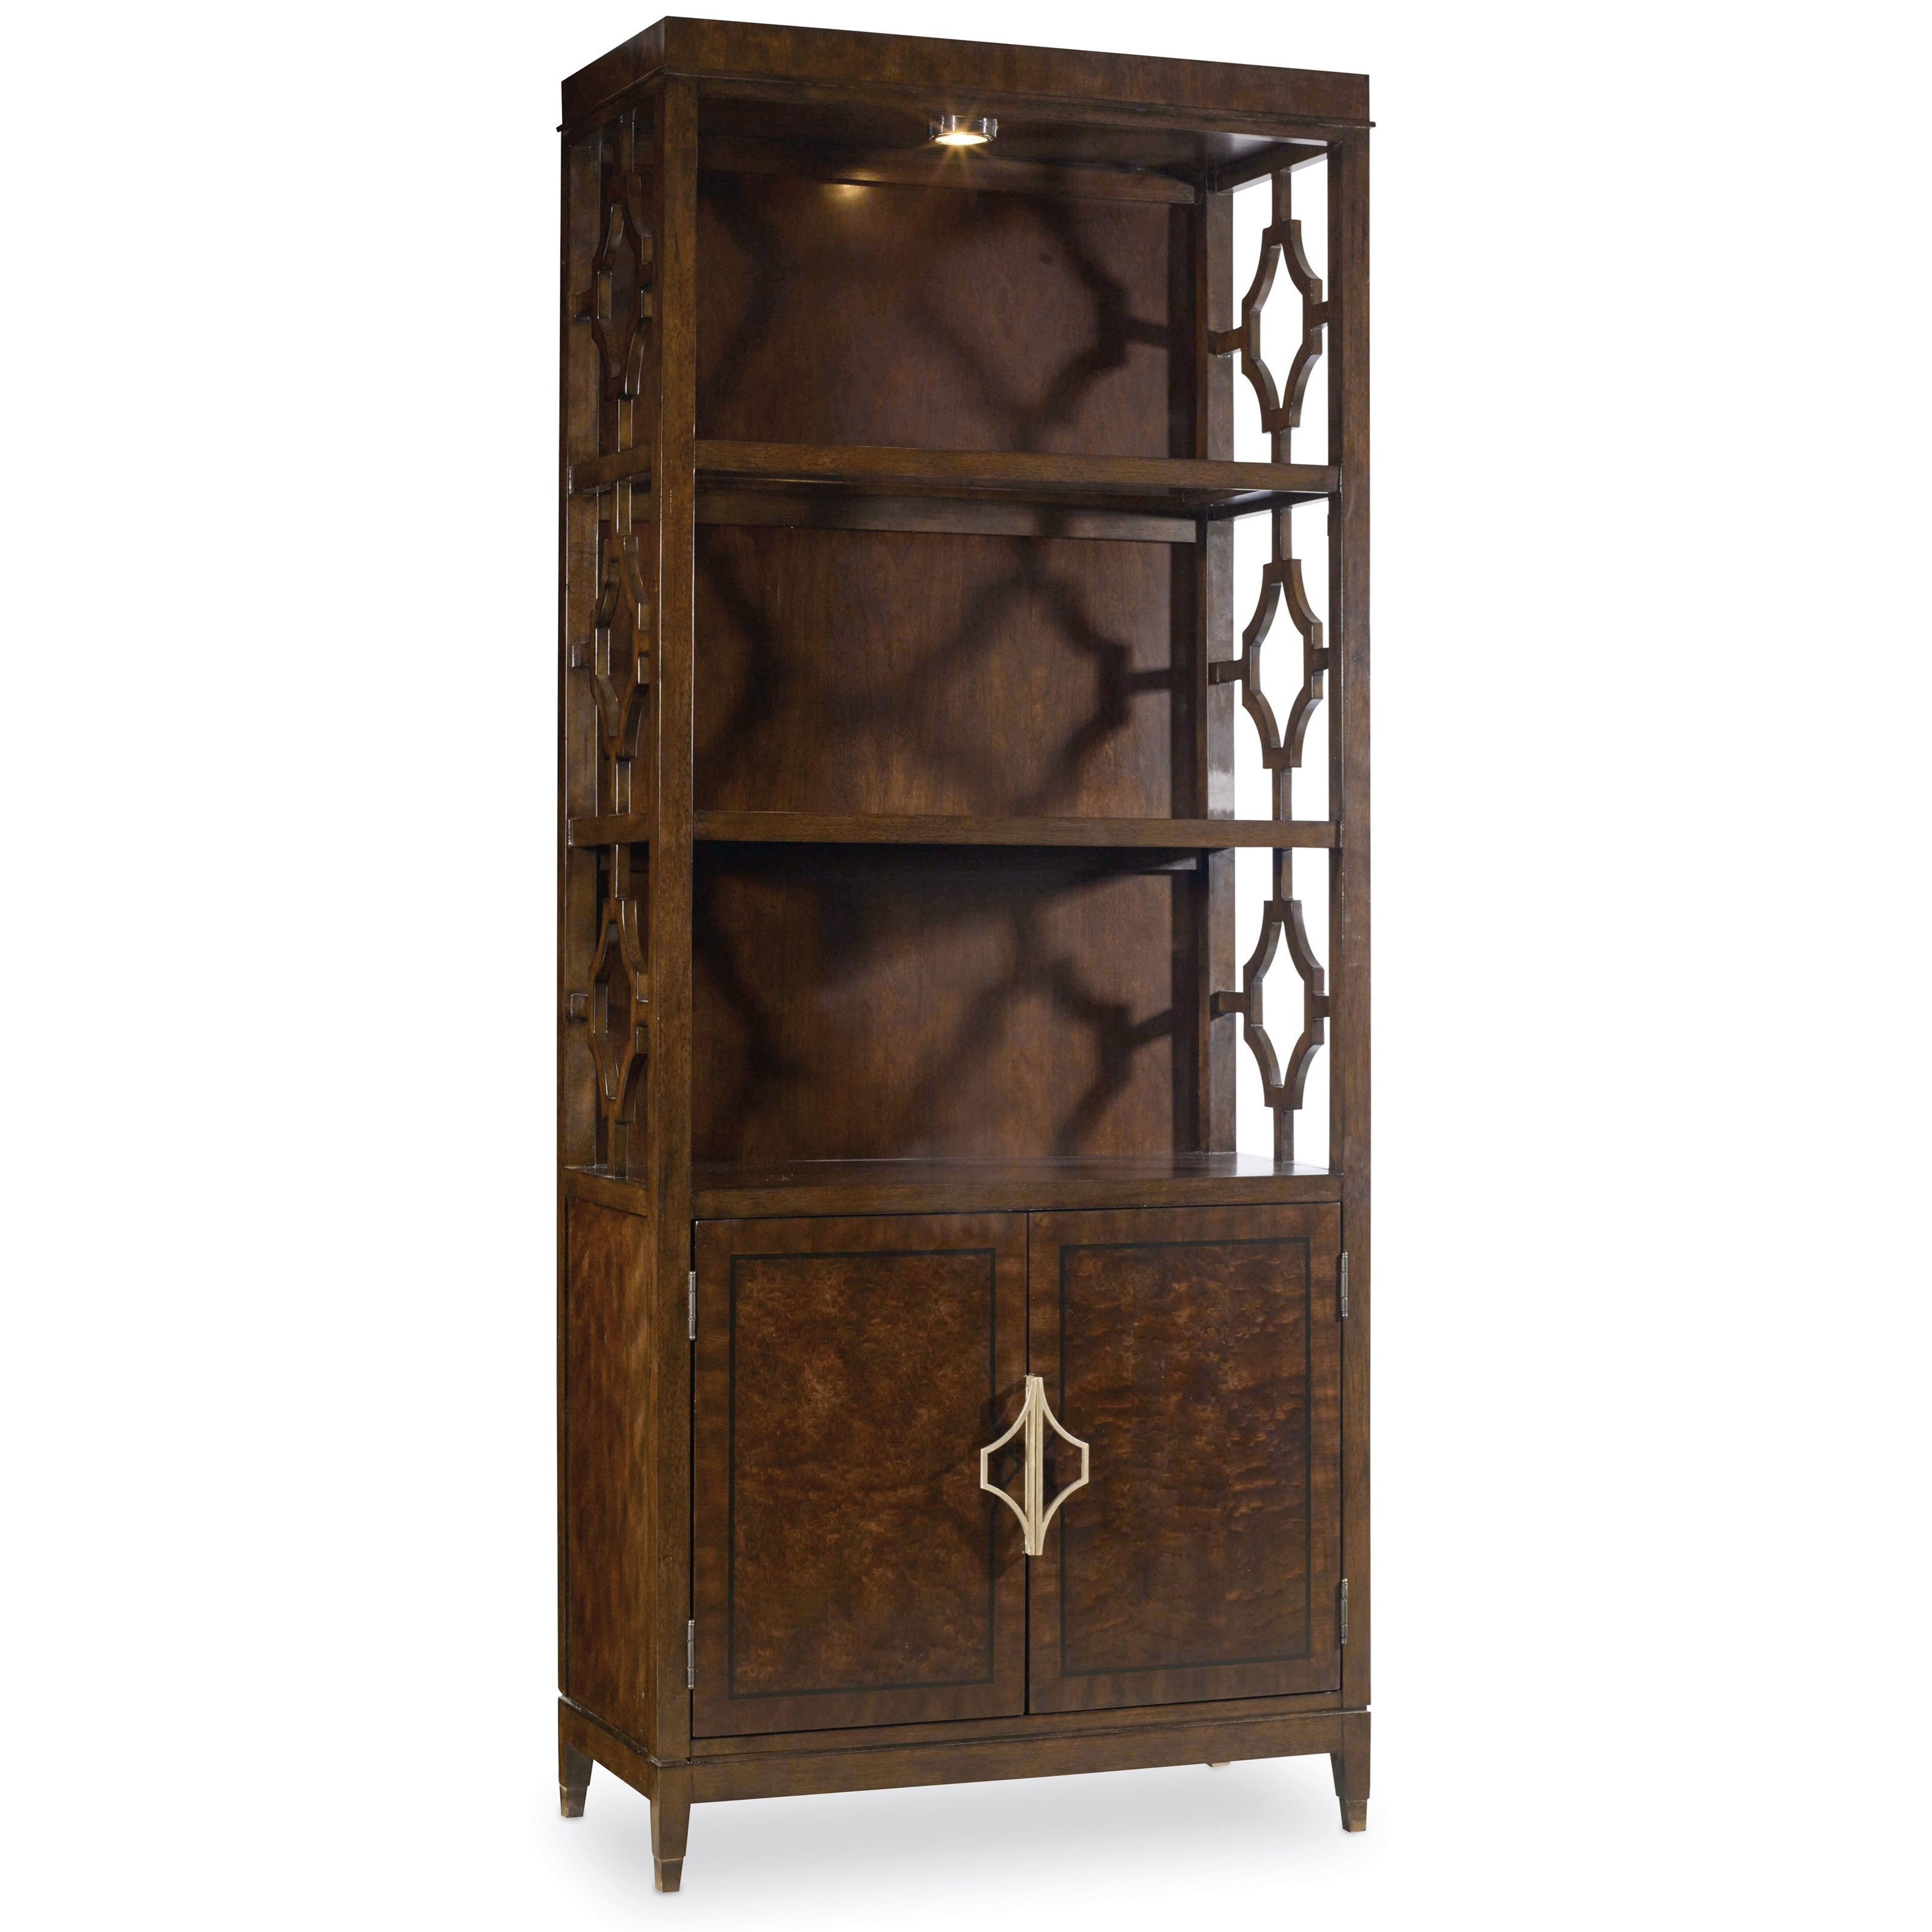 Hooker Furniture Skyline Bunching Bookcase - Item Number: 5336-10446